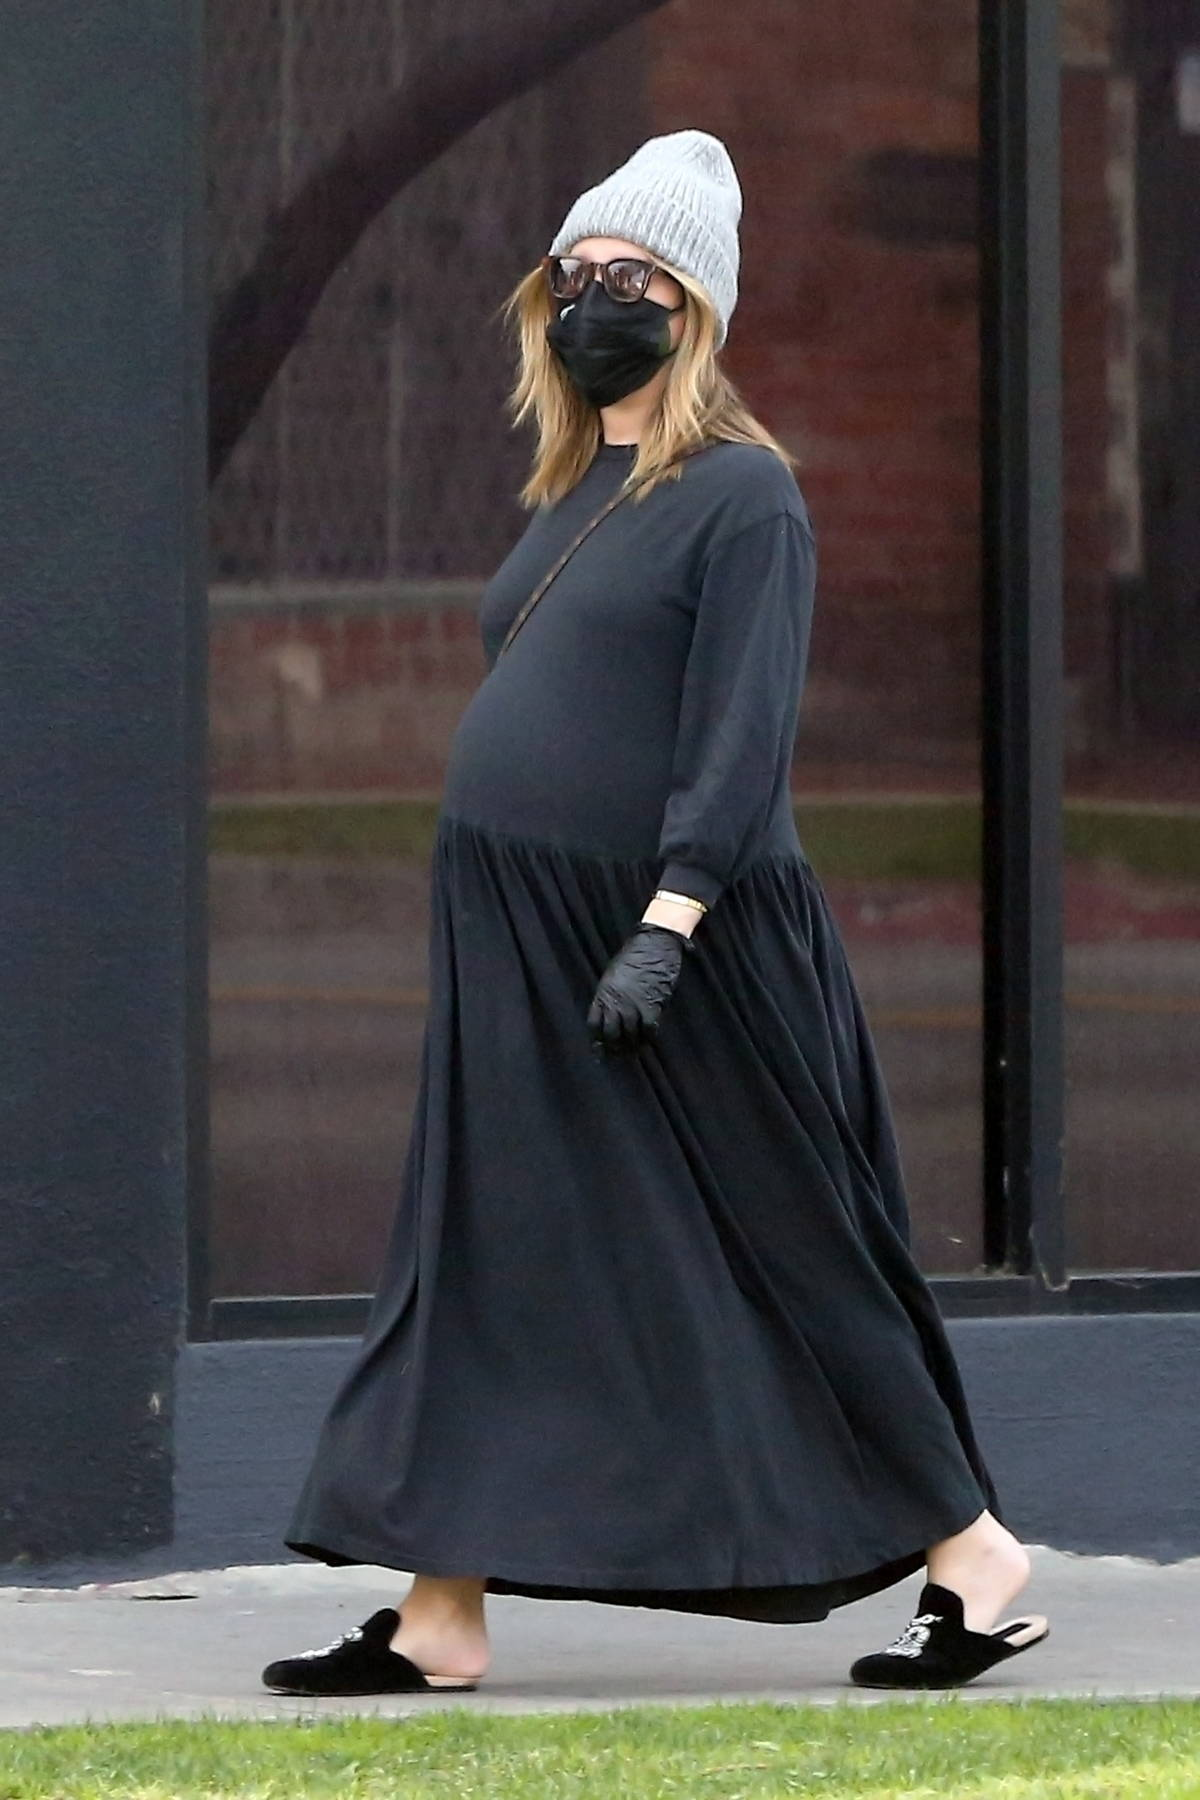 Ashley Tisdale shows her baby bump as she steps out in all-black for some shopping in West Hollywood, California